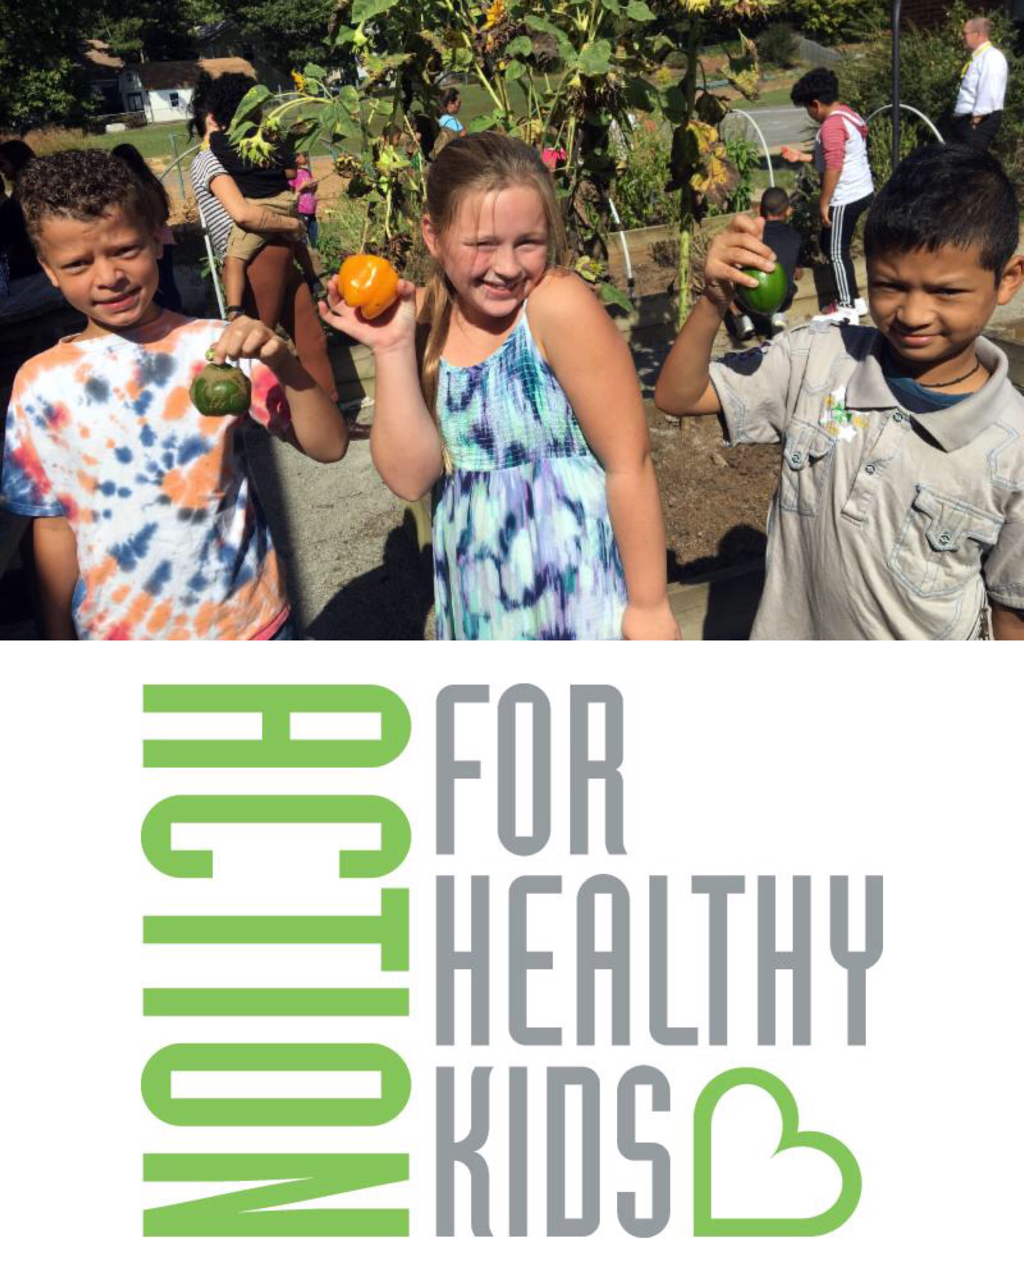 Help kids eat their veggies and succeed in school with a school grant from Action for Healthy Kids